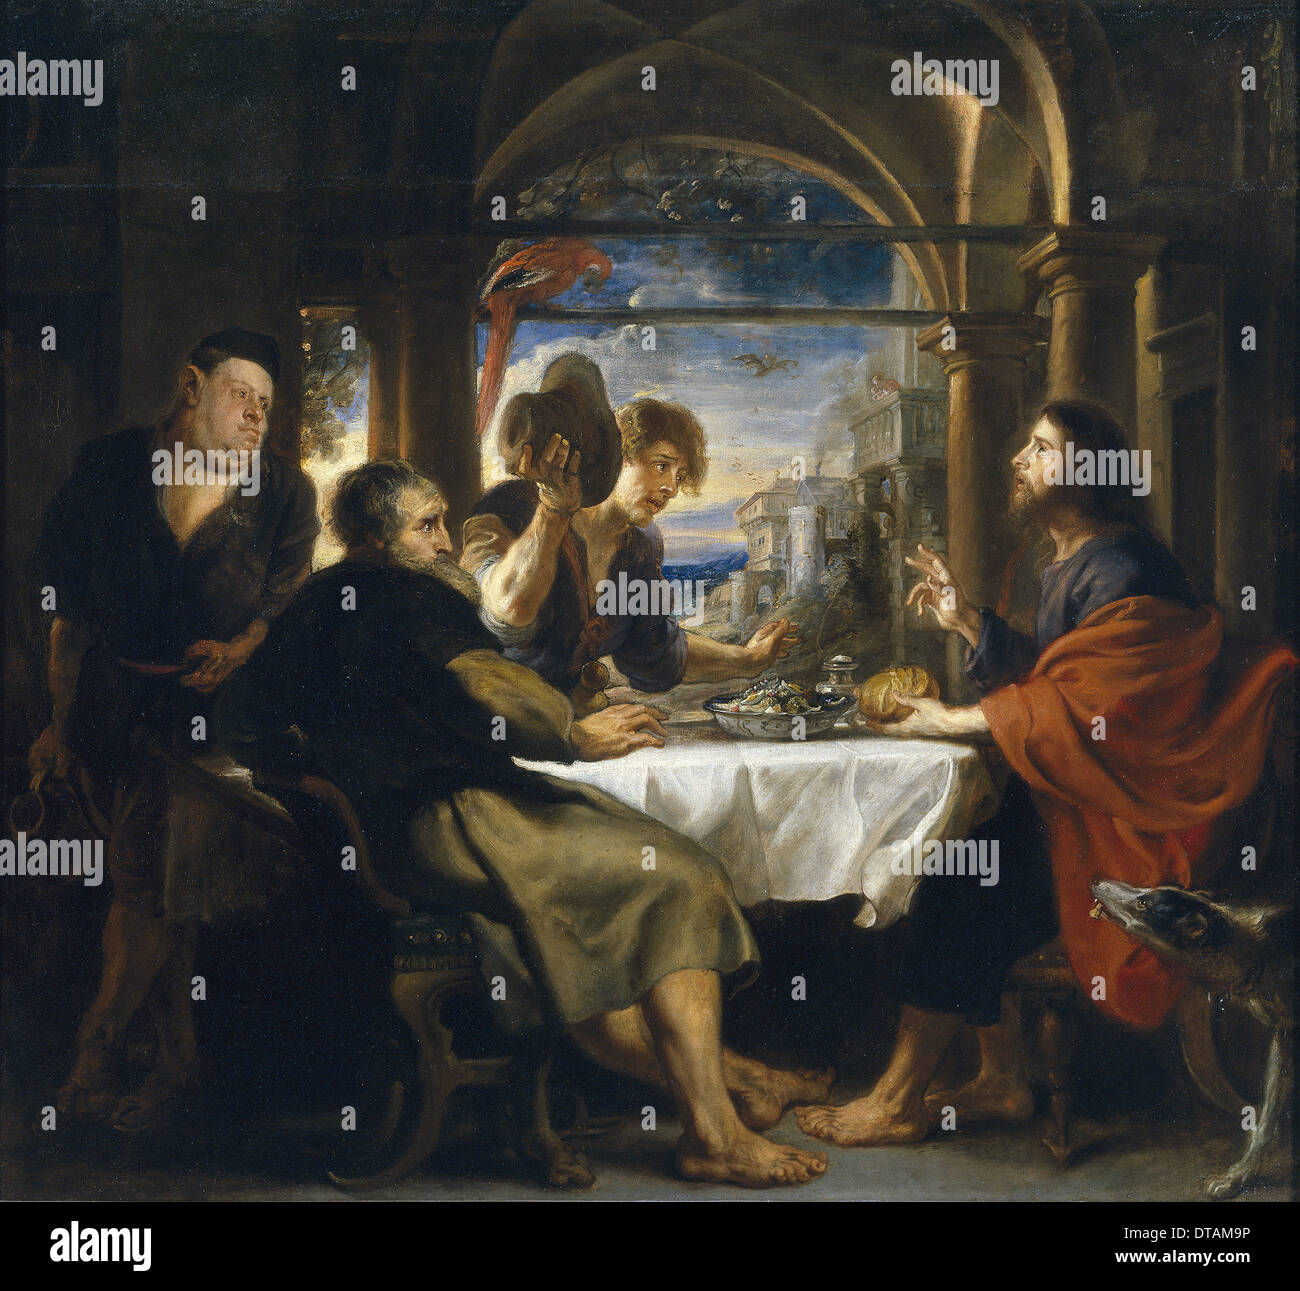 the supper at emmaus stock photos the supper at emmaus stock images alamy. Black Bedroom Furniture Sets. Home Design Ideas